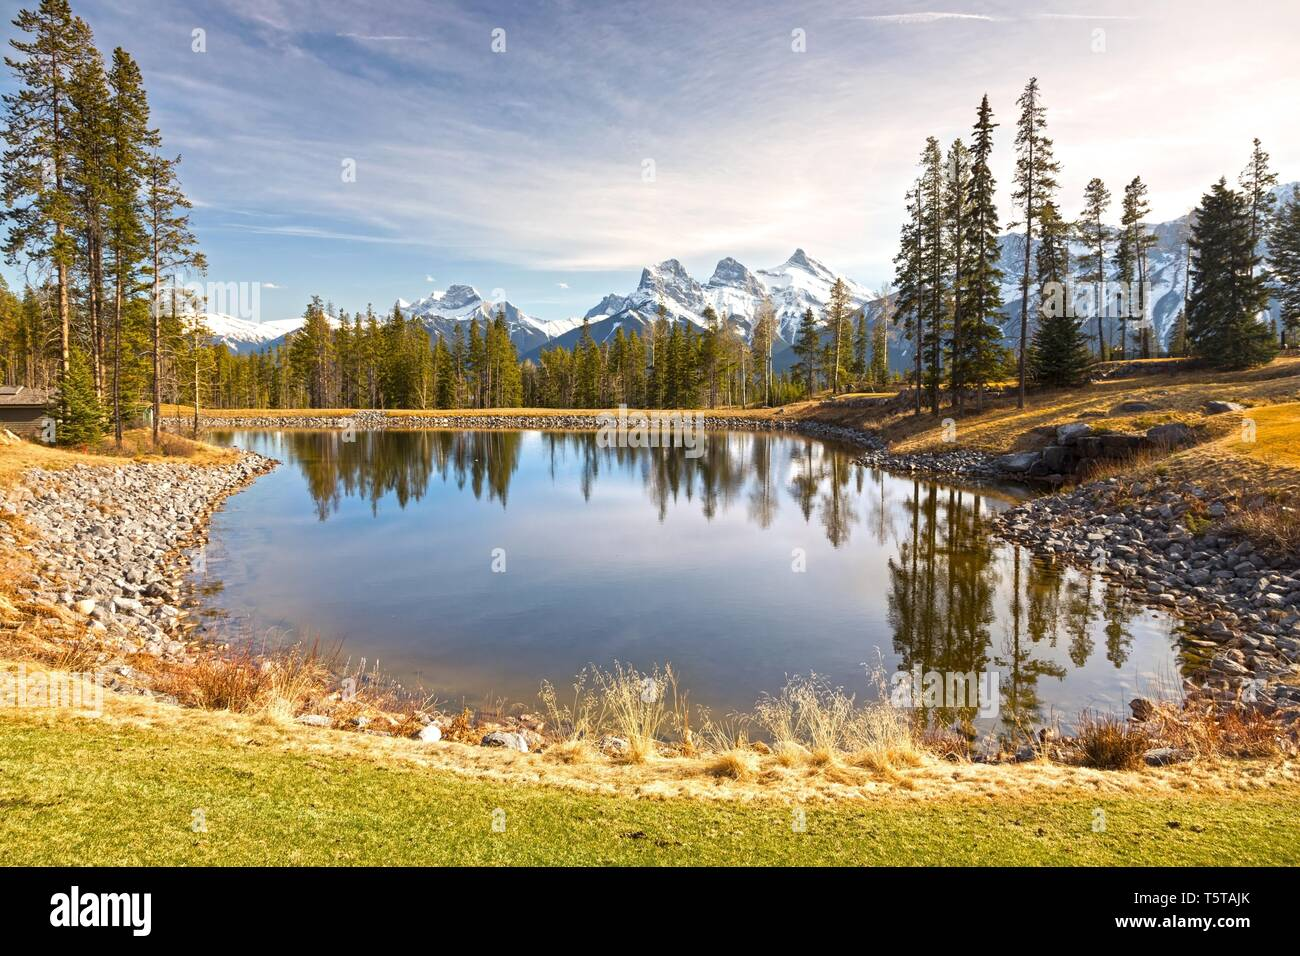 Scenic Springtime Landscape View Mountain Peaks, Green Grassland, Blue Lake Canmore Alberta, Canadian Rockies Foothills Banff National Park - Stock Image